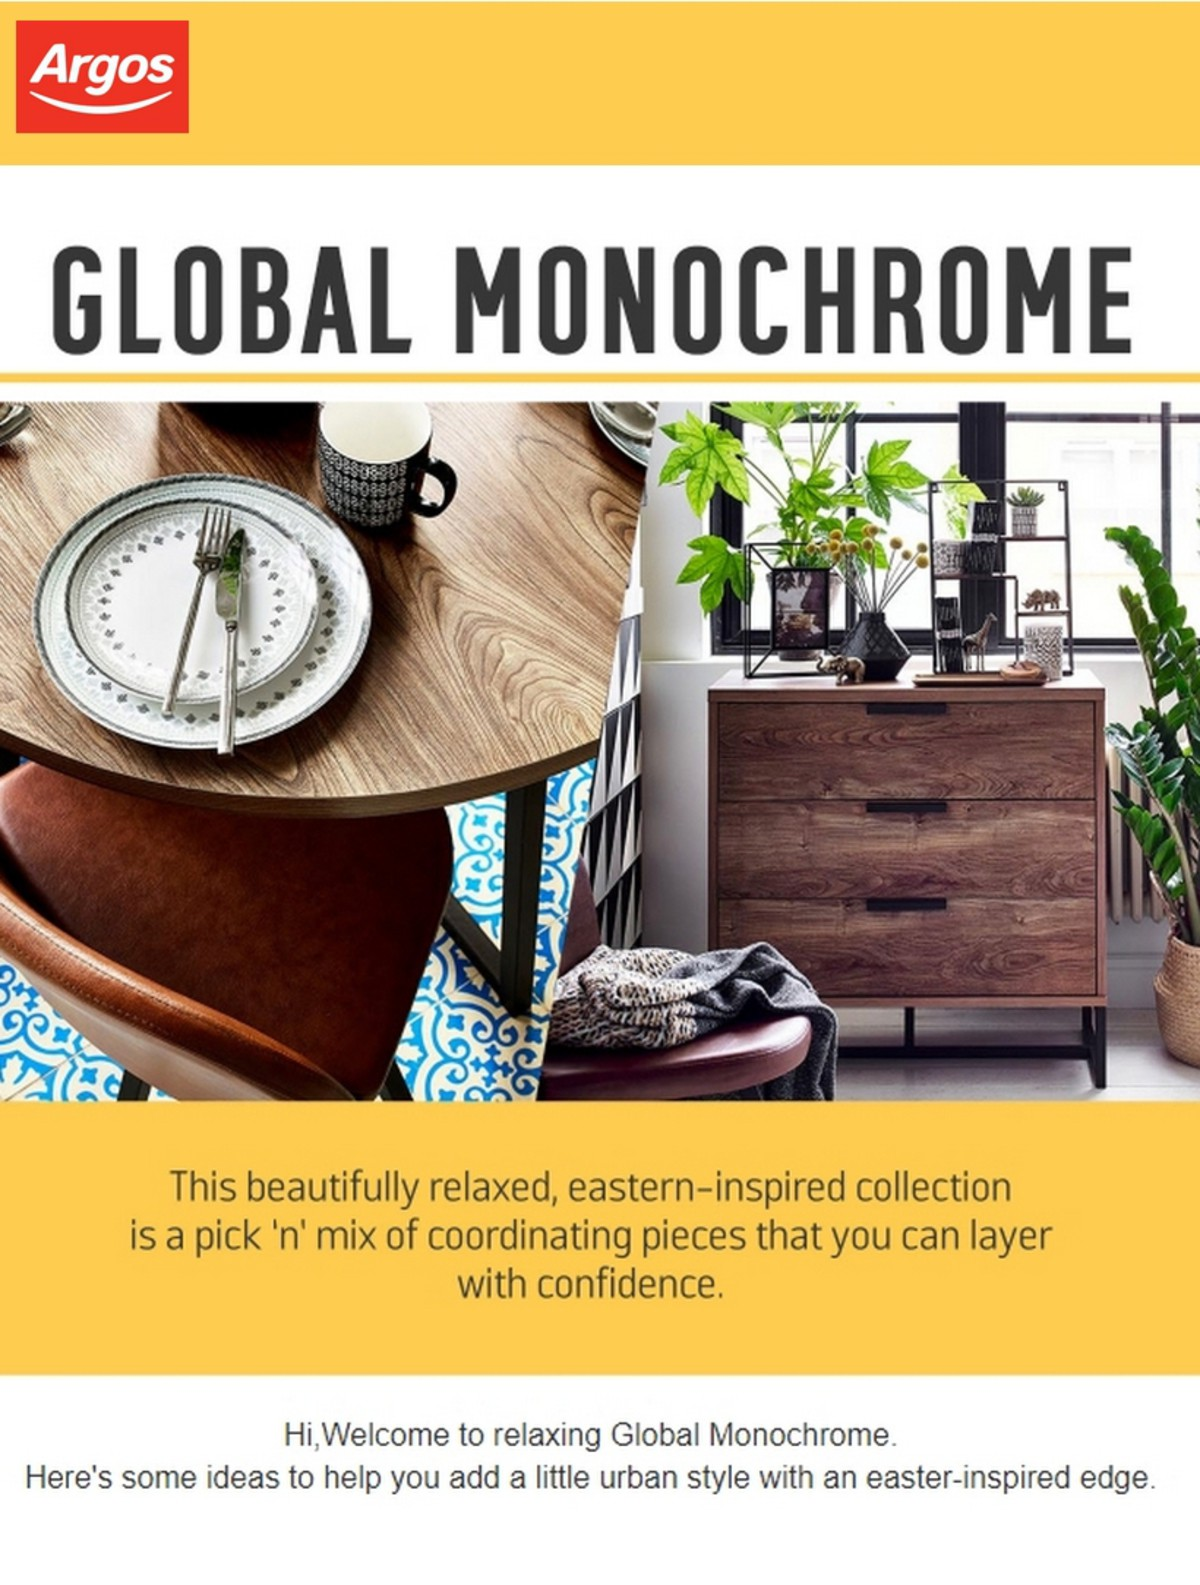 Argos Introducing Global Monochrome Offers from May 20